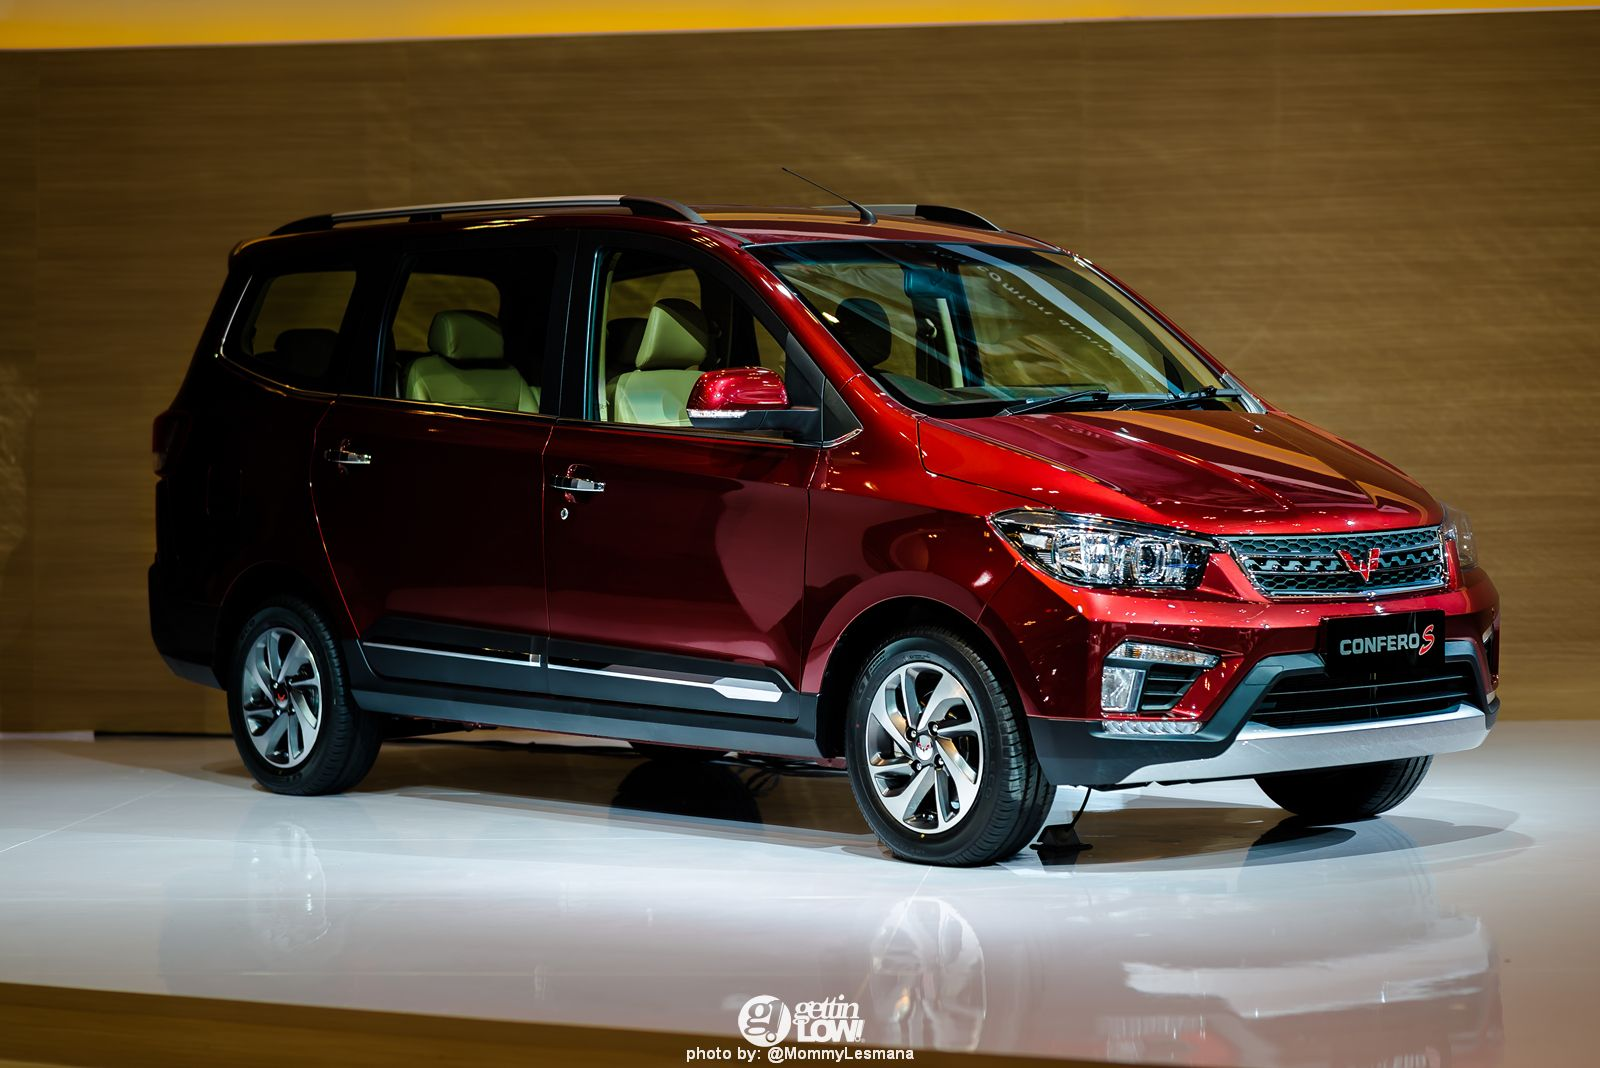 Wuling Confero S Gettinlow Pinterest More Photos Revo Fit Raving Red Bantul